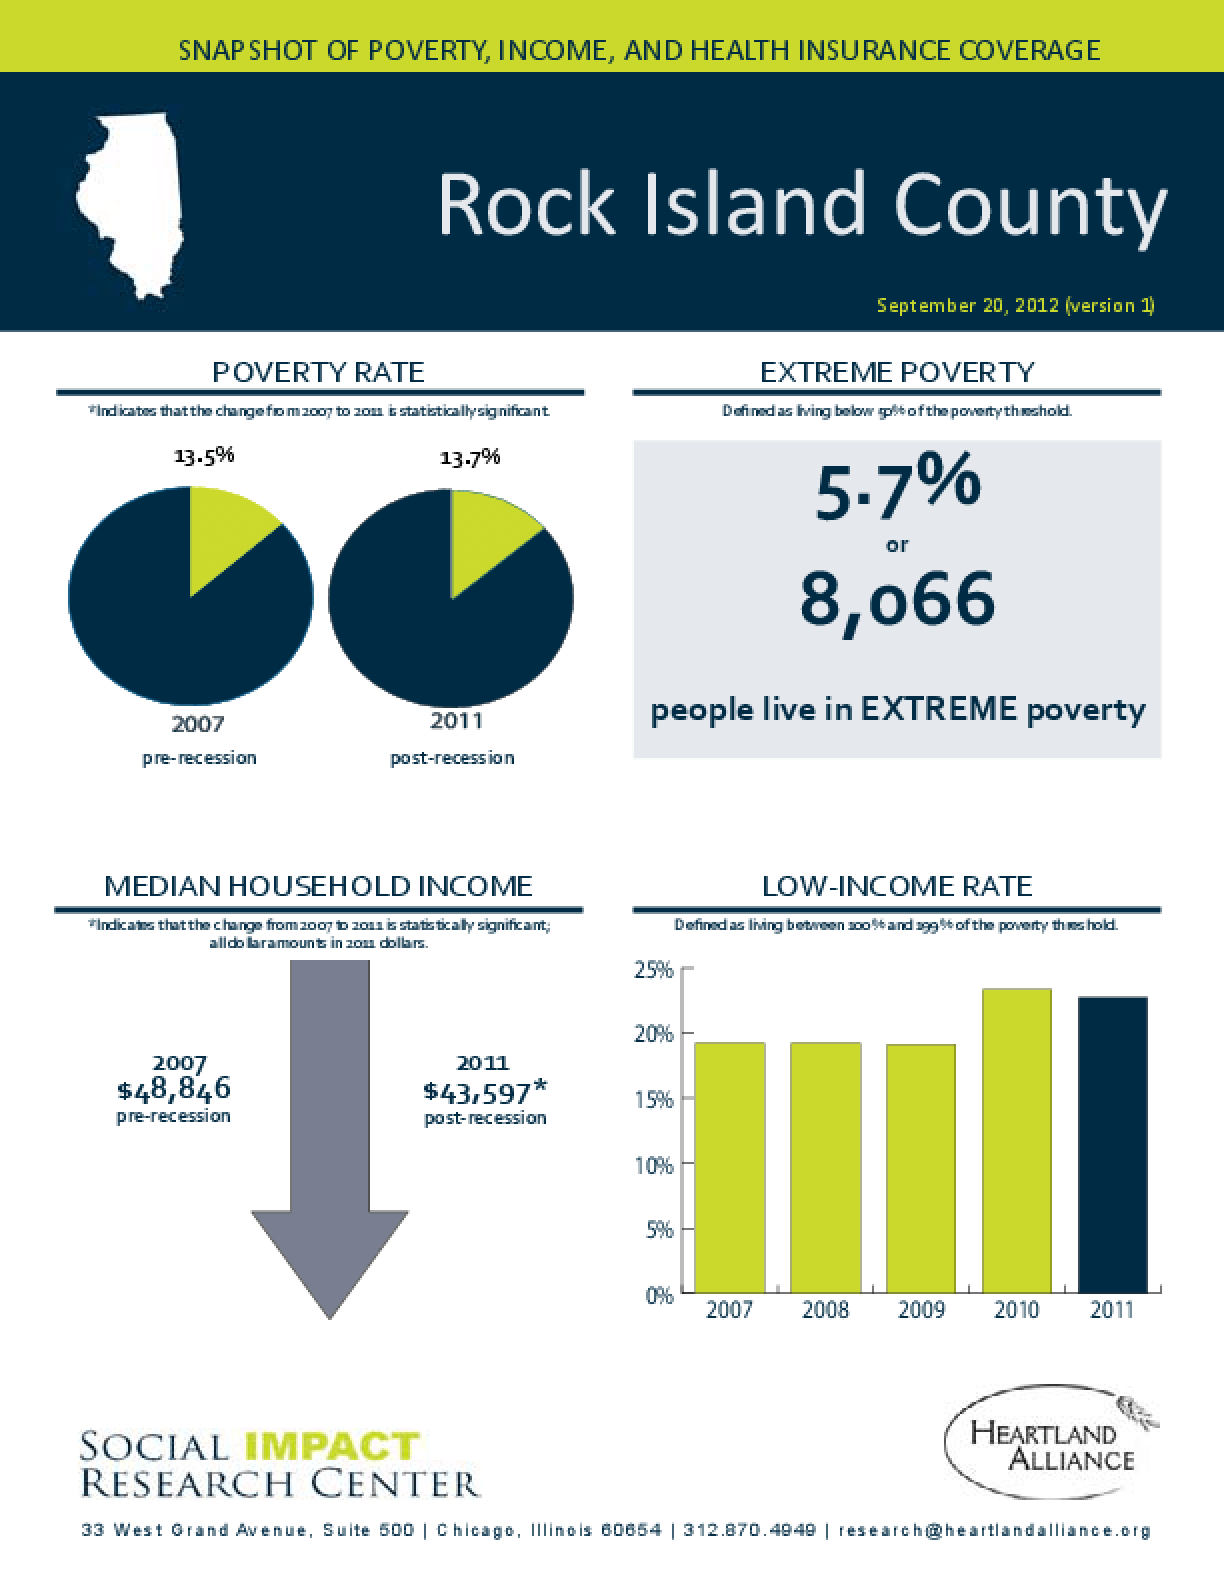 Rock Island County: Snapshot of Poverty, Income, and Health Insurance Coverage - 2011